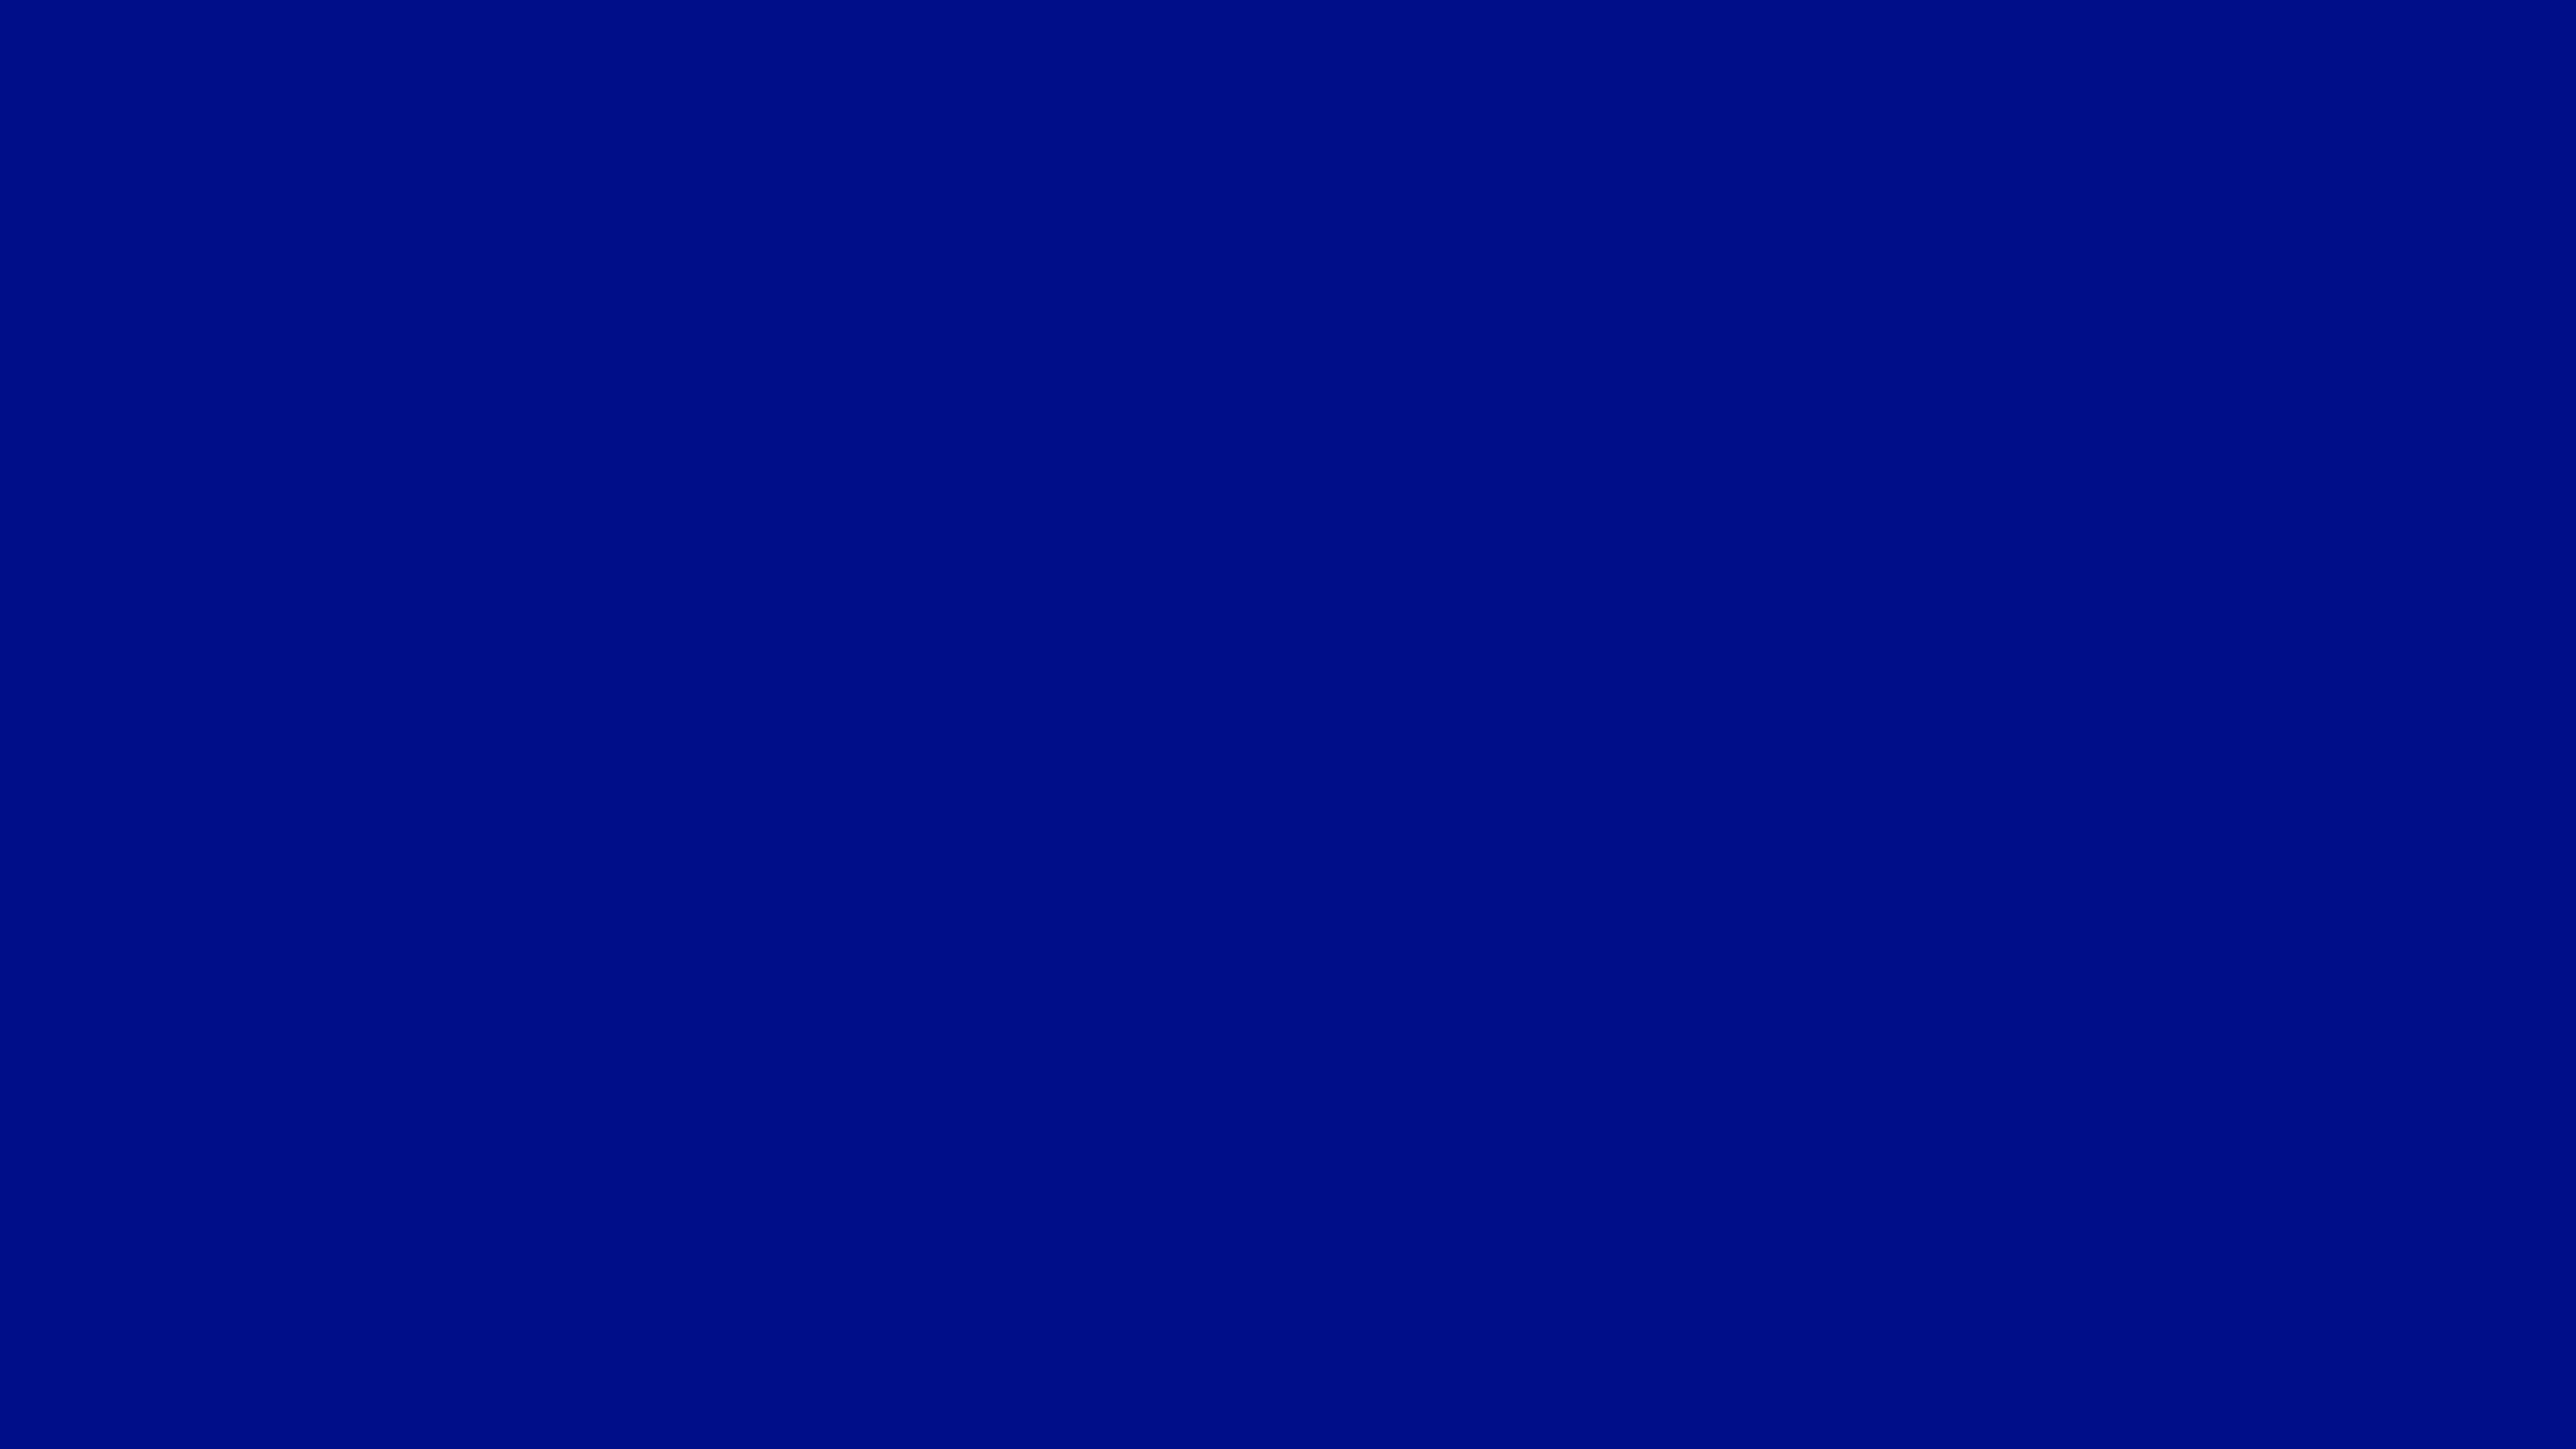 3840x2160 Phthalo Blue Solid Color Background